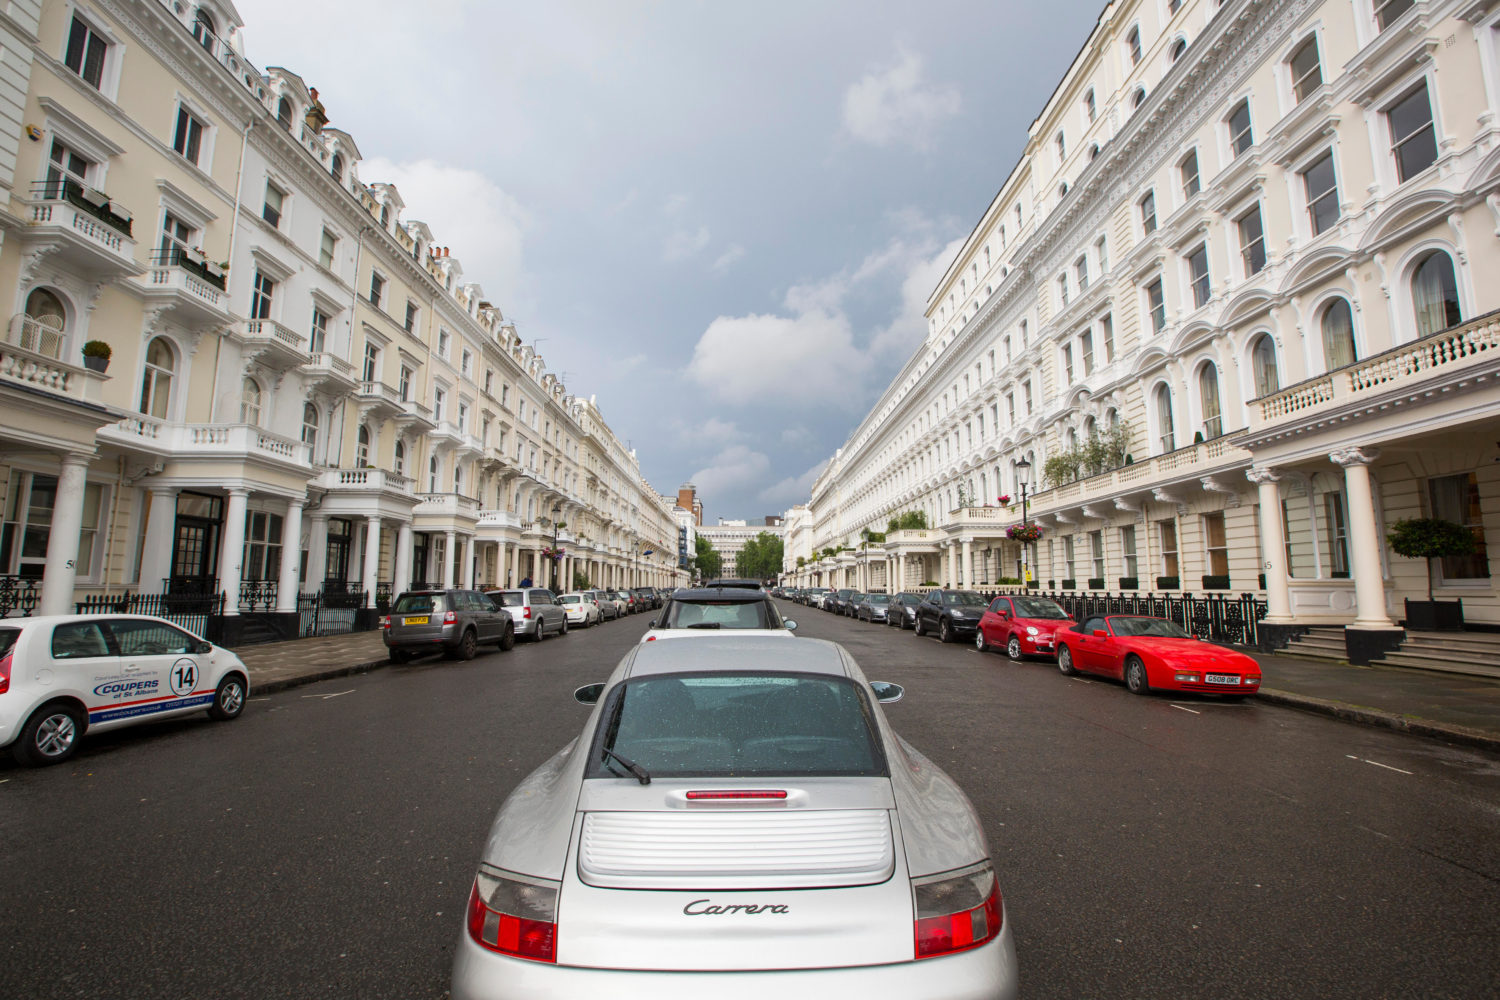 Queens Gate terrace, an exclusive address of very expensive houses in SW7, London, UK.